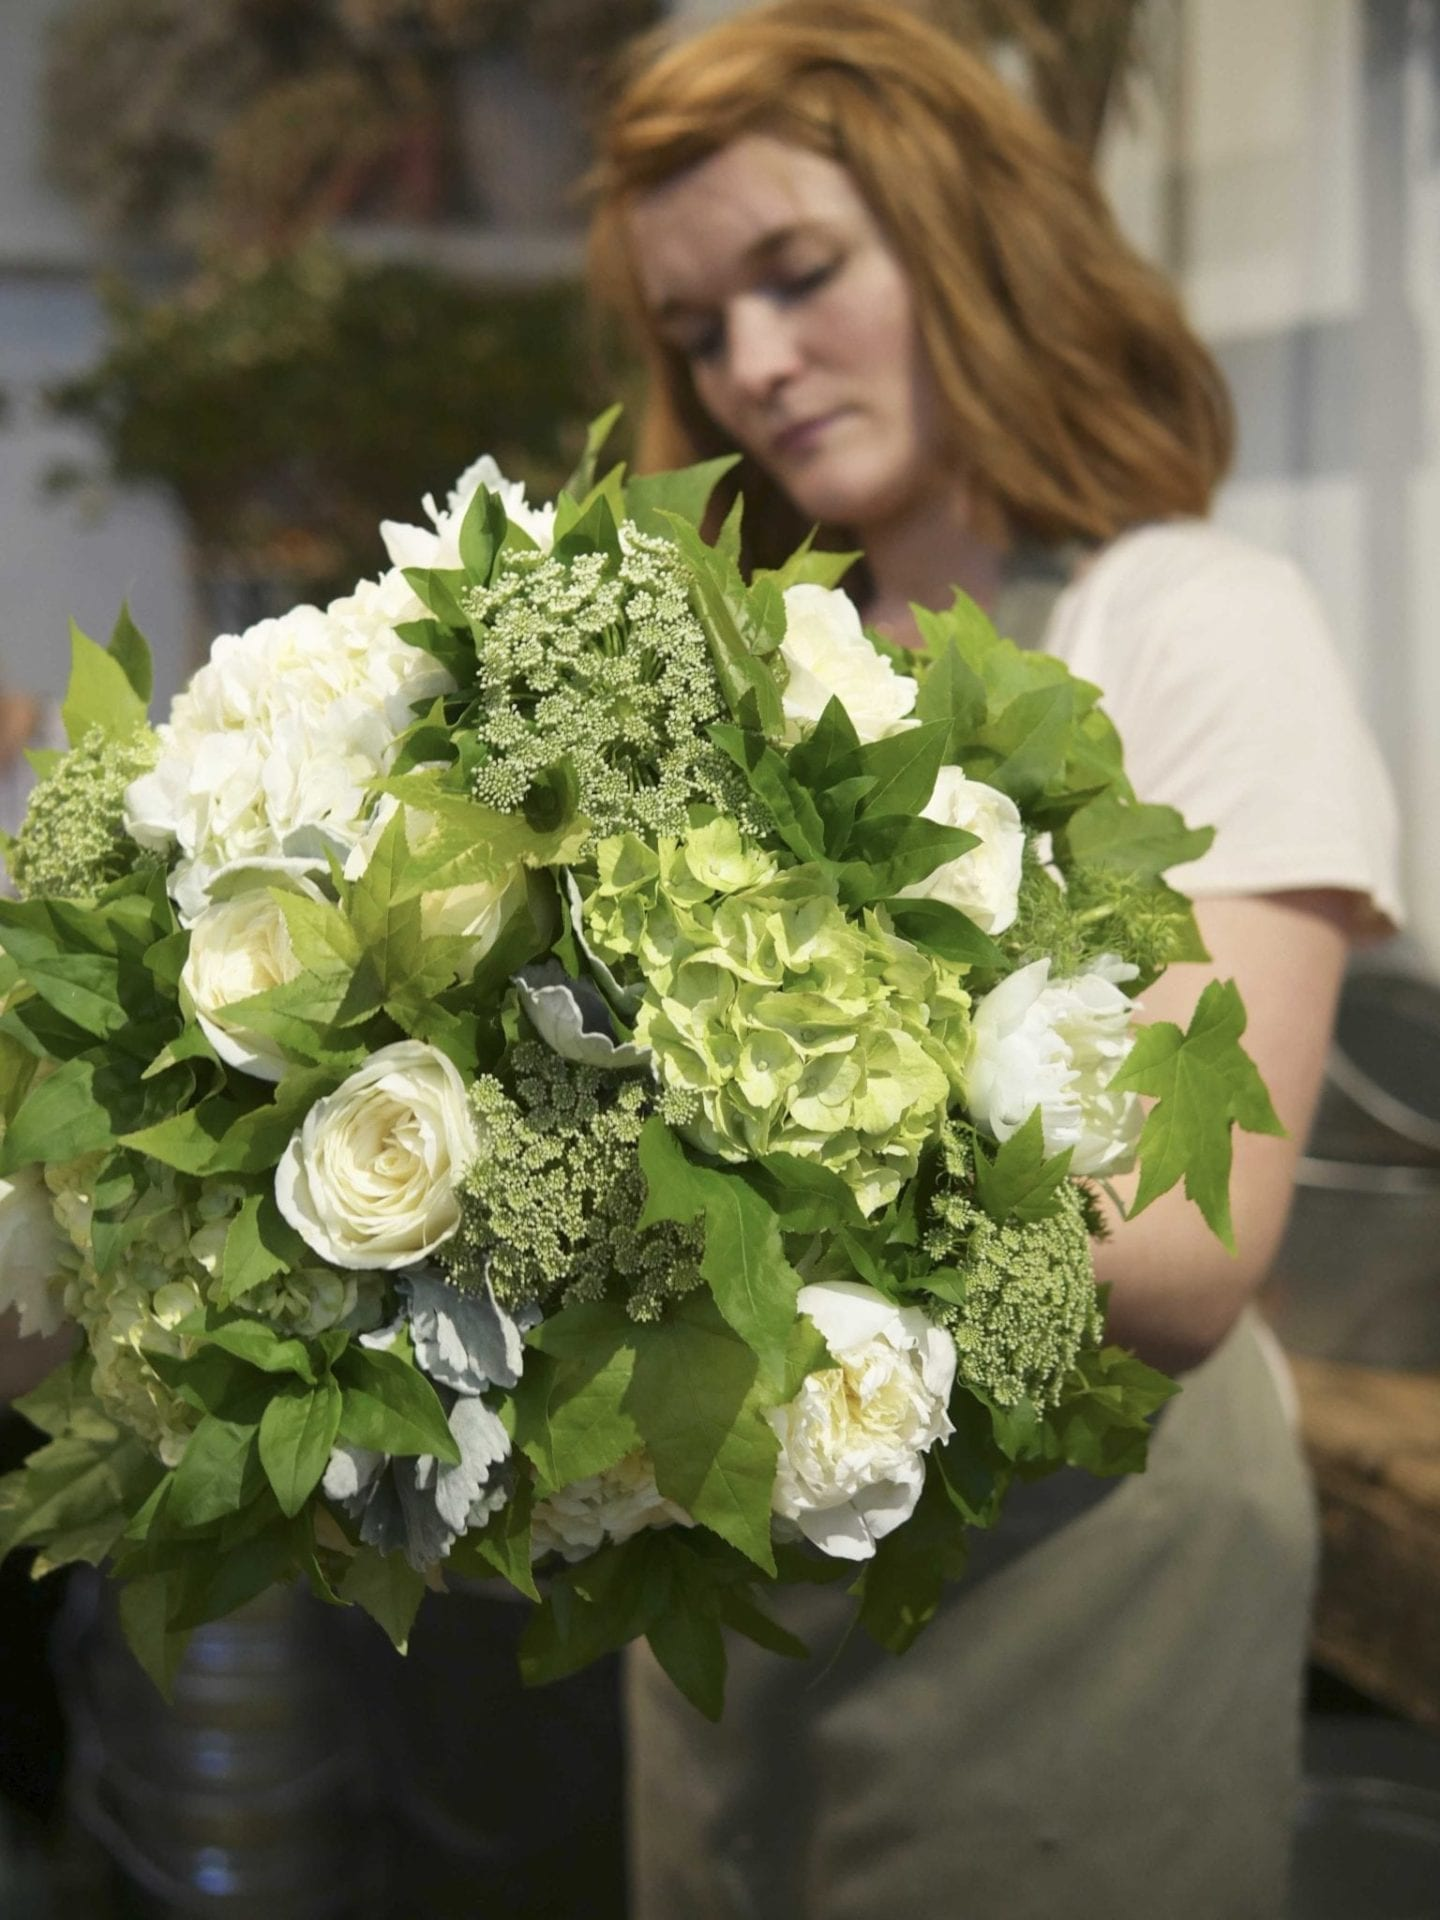 White and green flower bouquet.